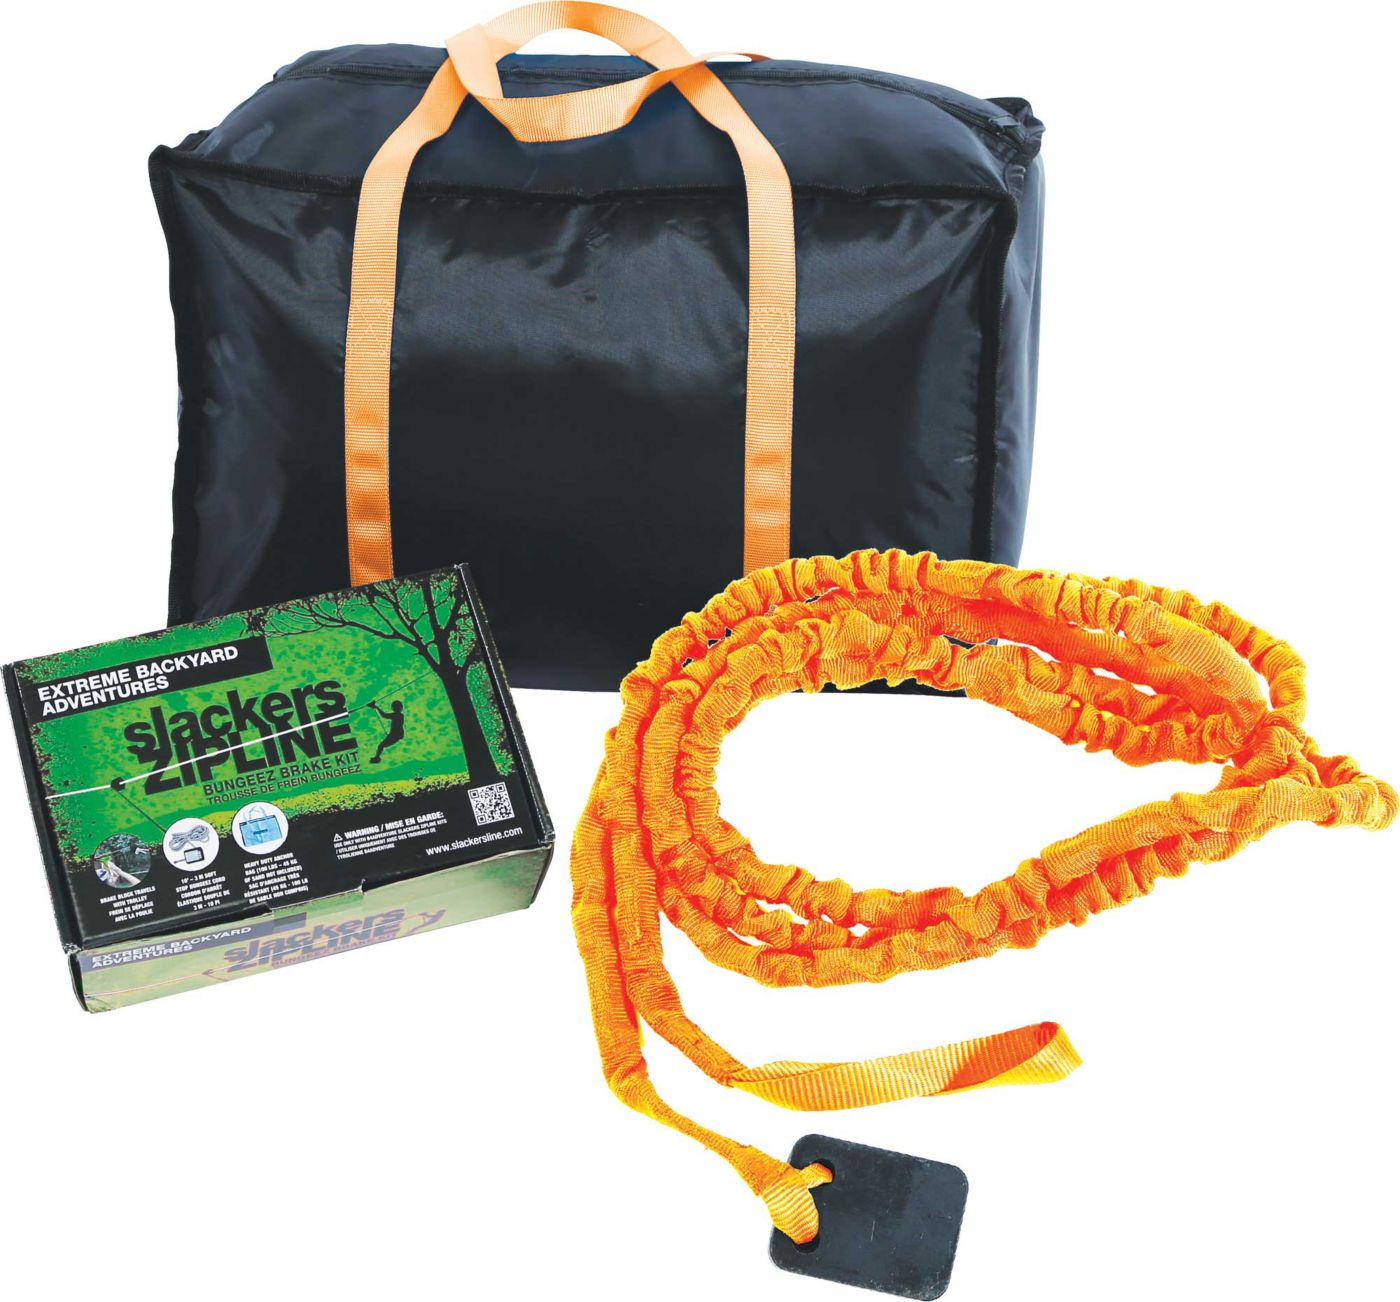 Slackers Deluxe Bungee Brake Kit